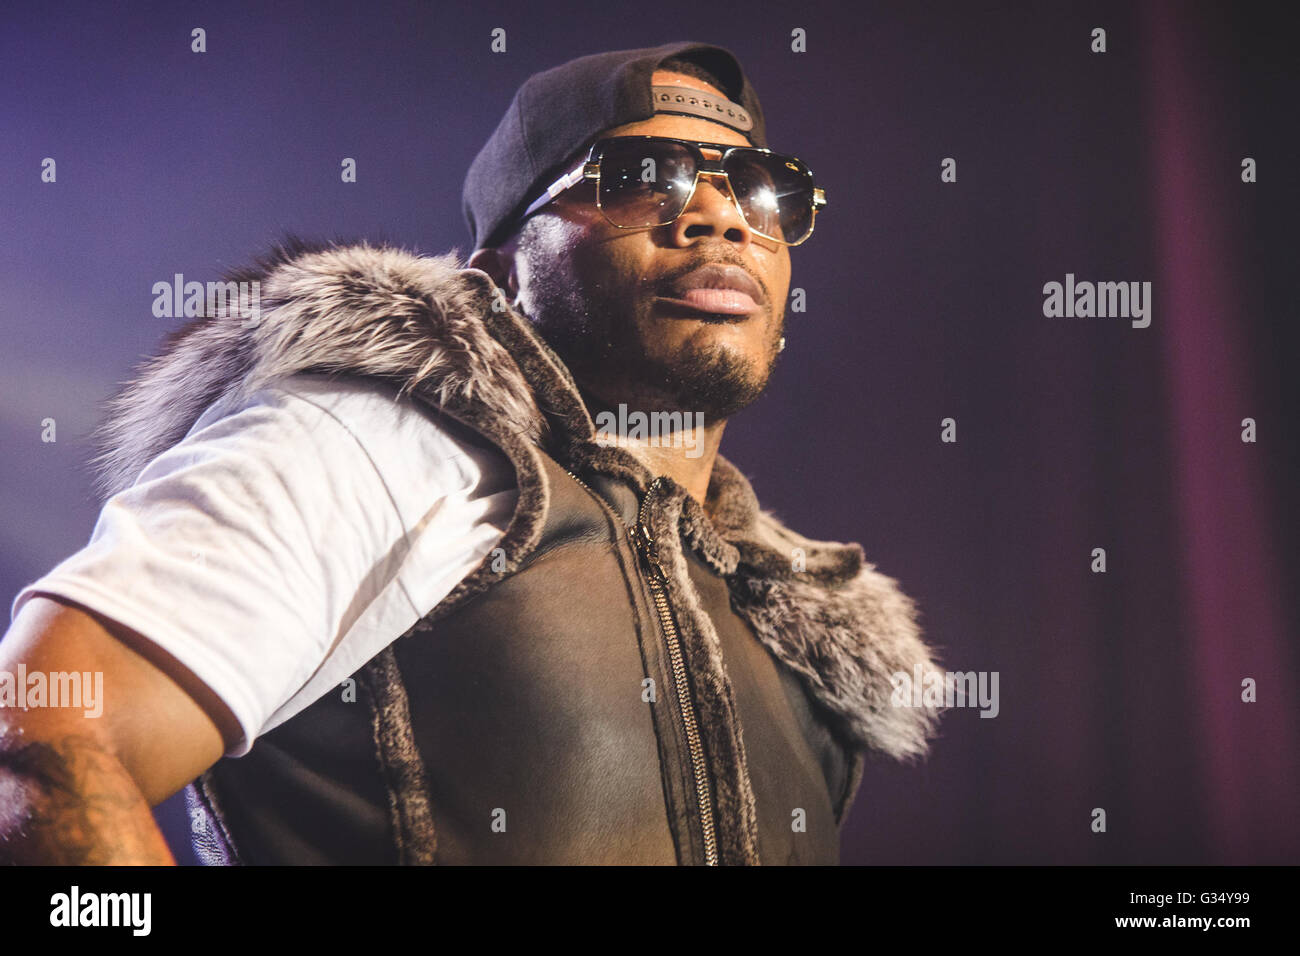 manchester uk uk 8th june 2016 rapper nelly performs at the o2